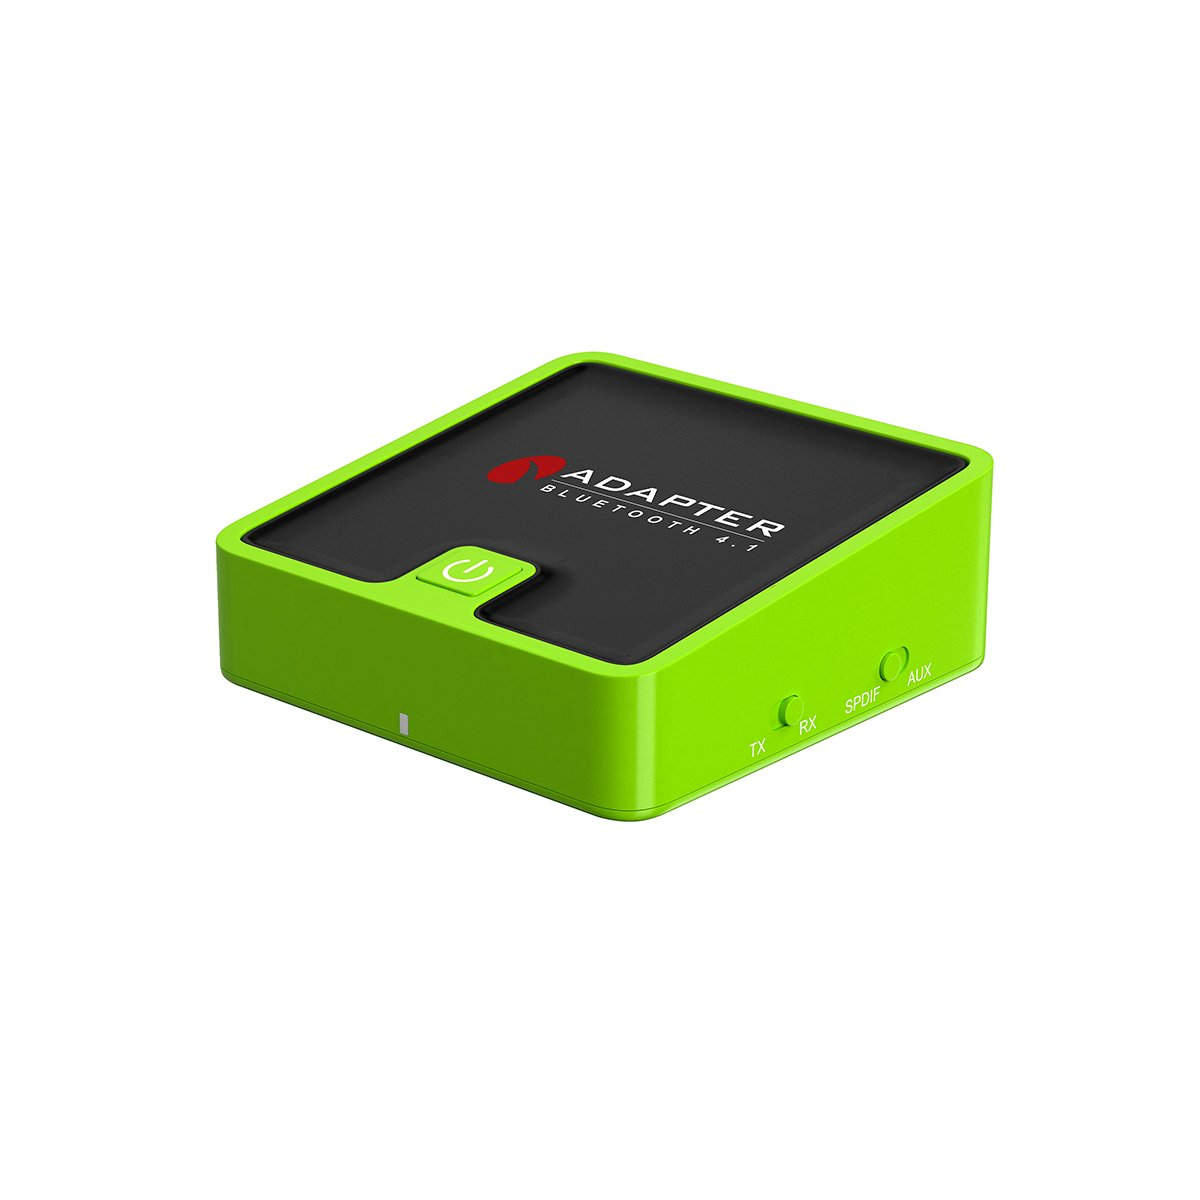 Vacio TI-039 Bluetooth 4.1 2in1 Transmitter Receiver Digital Optical Wireless Audio Adapter Support APT-X aptx / Wireless A2DP Audio Adapter with SPDIF & Aux 3.5mm -Green by Vacio (Image #2)